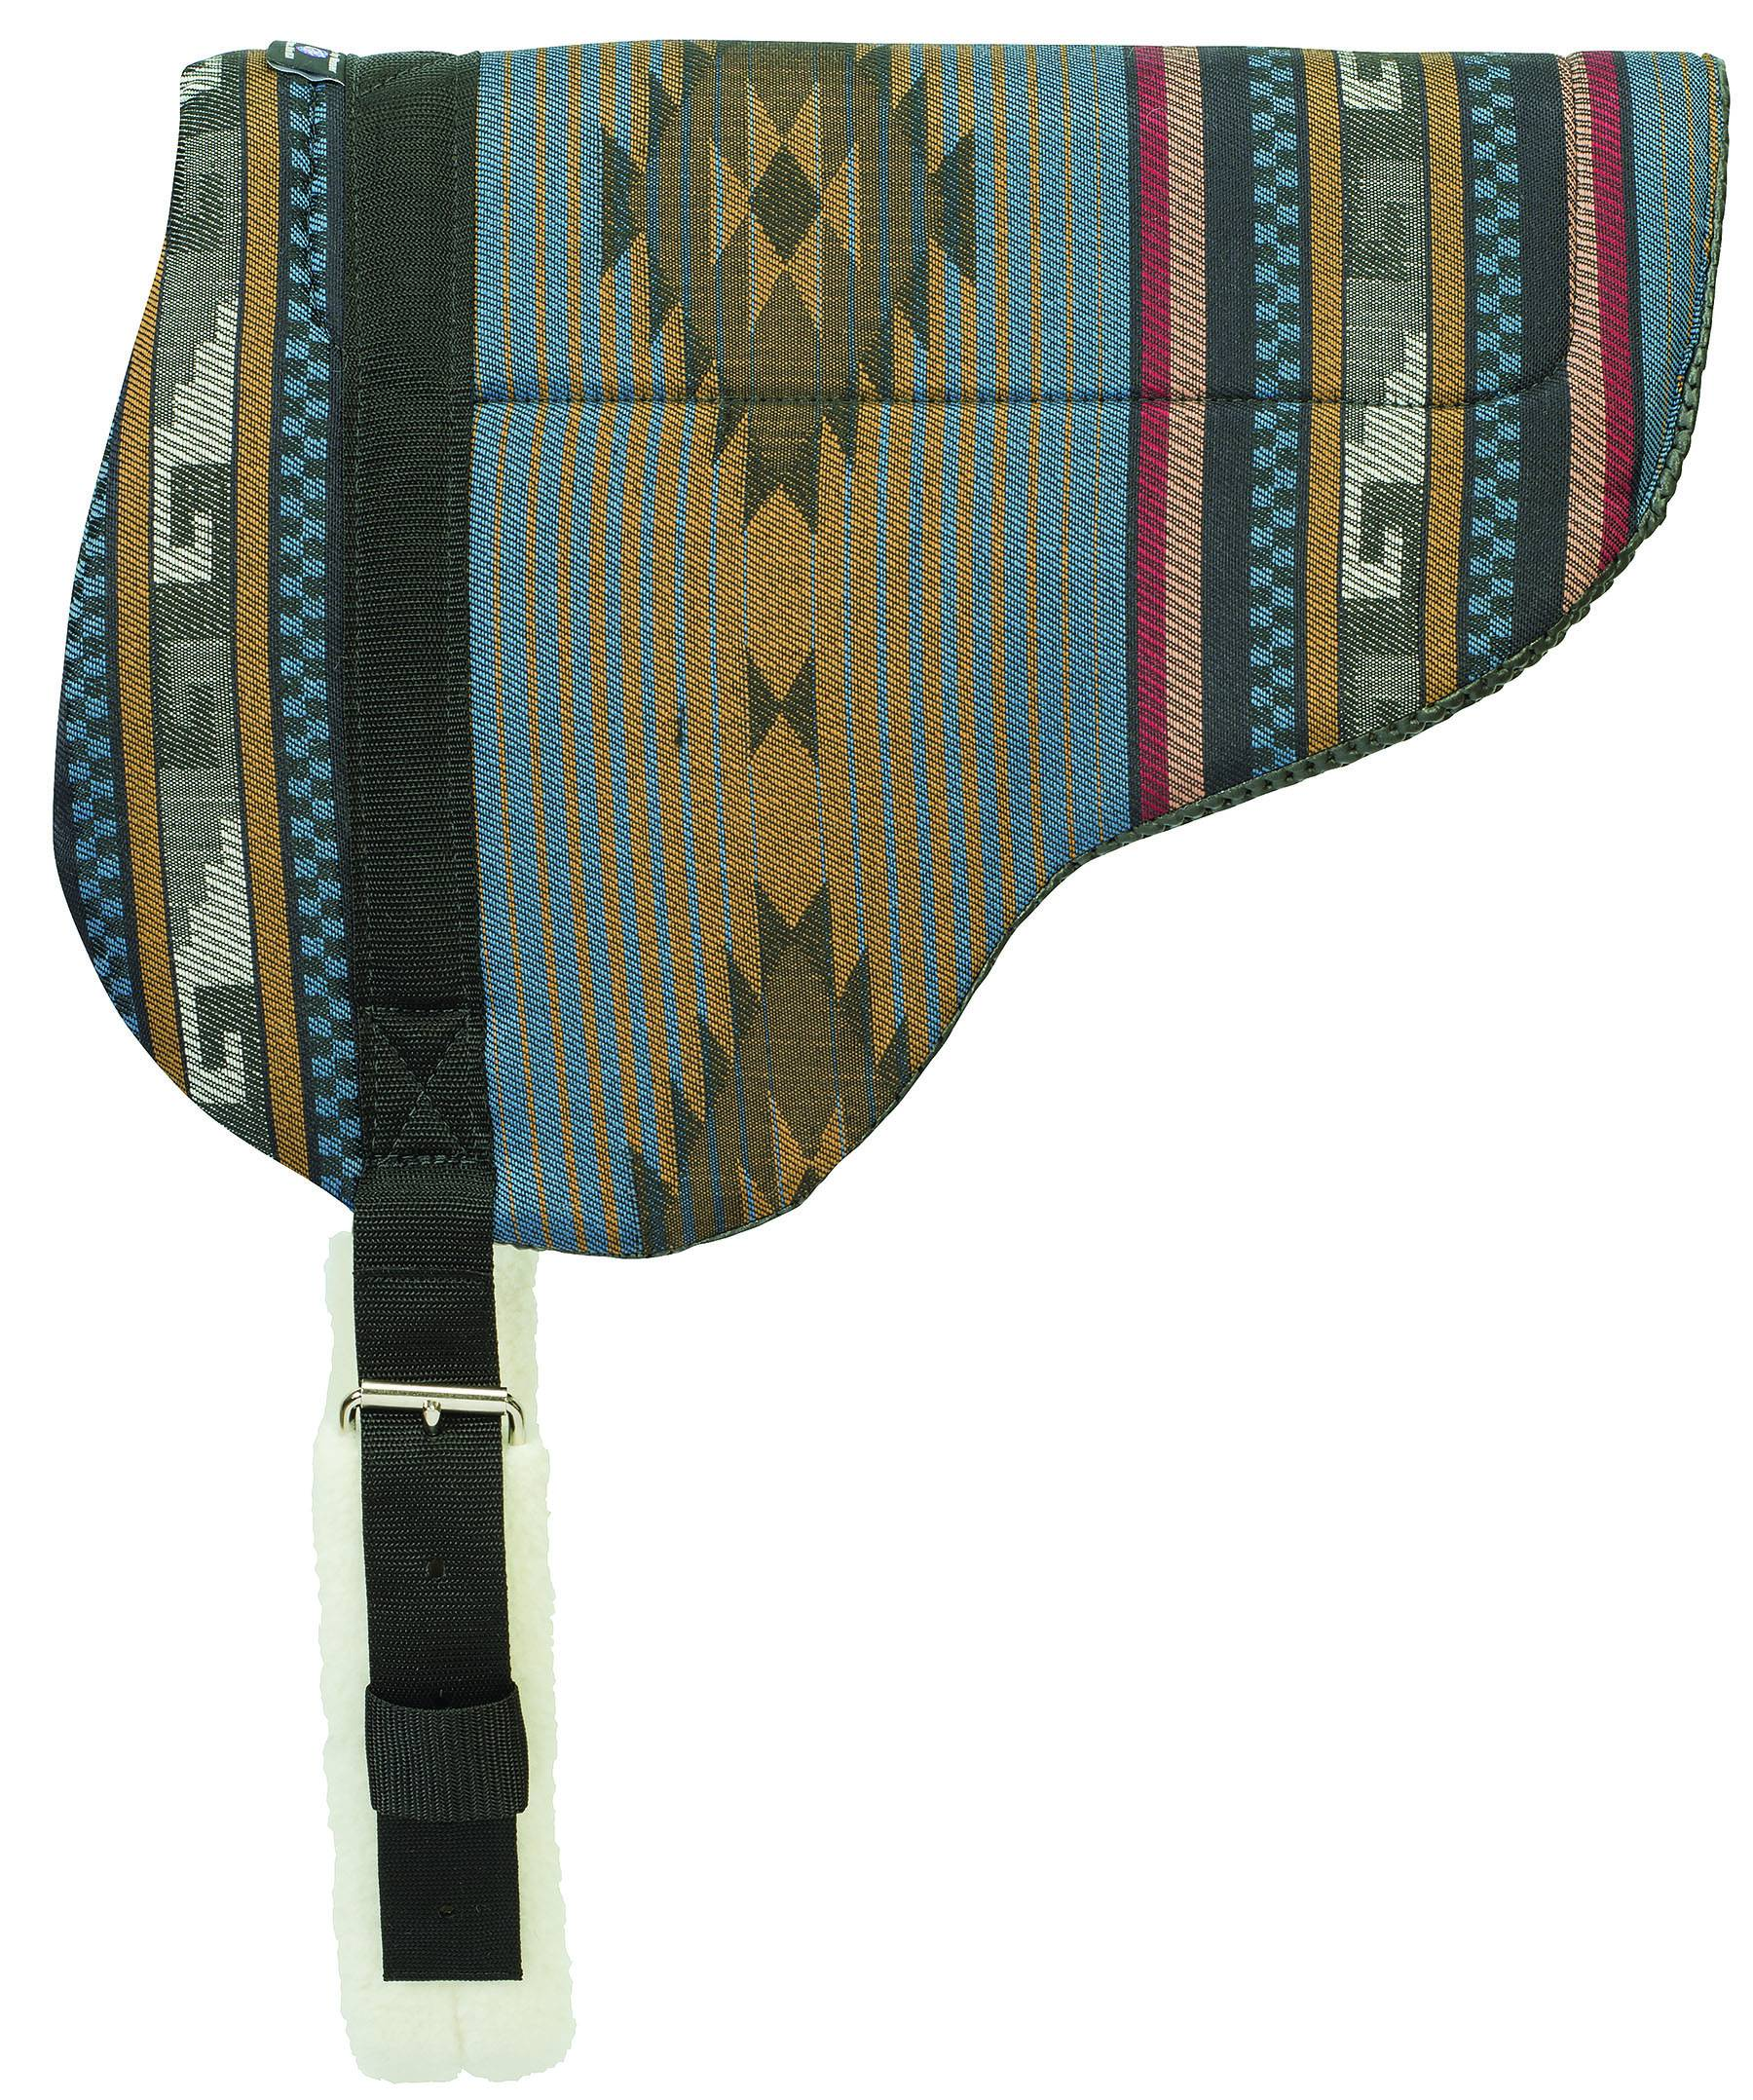 Weaver Herculon Tacky-Tack Bottom Bareback Pad - H33